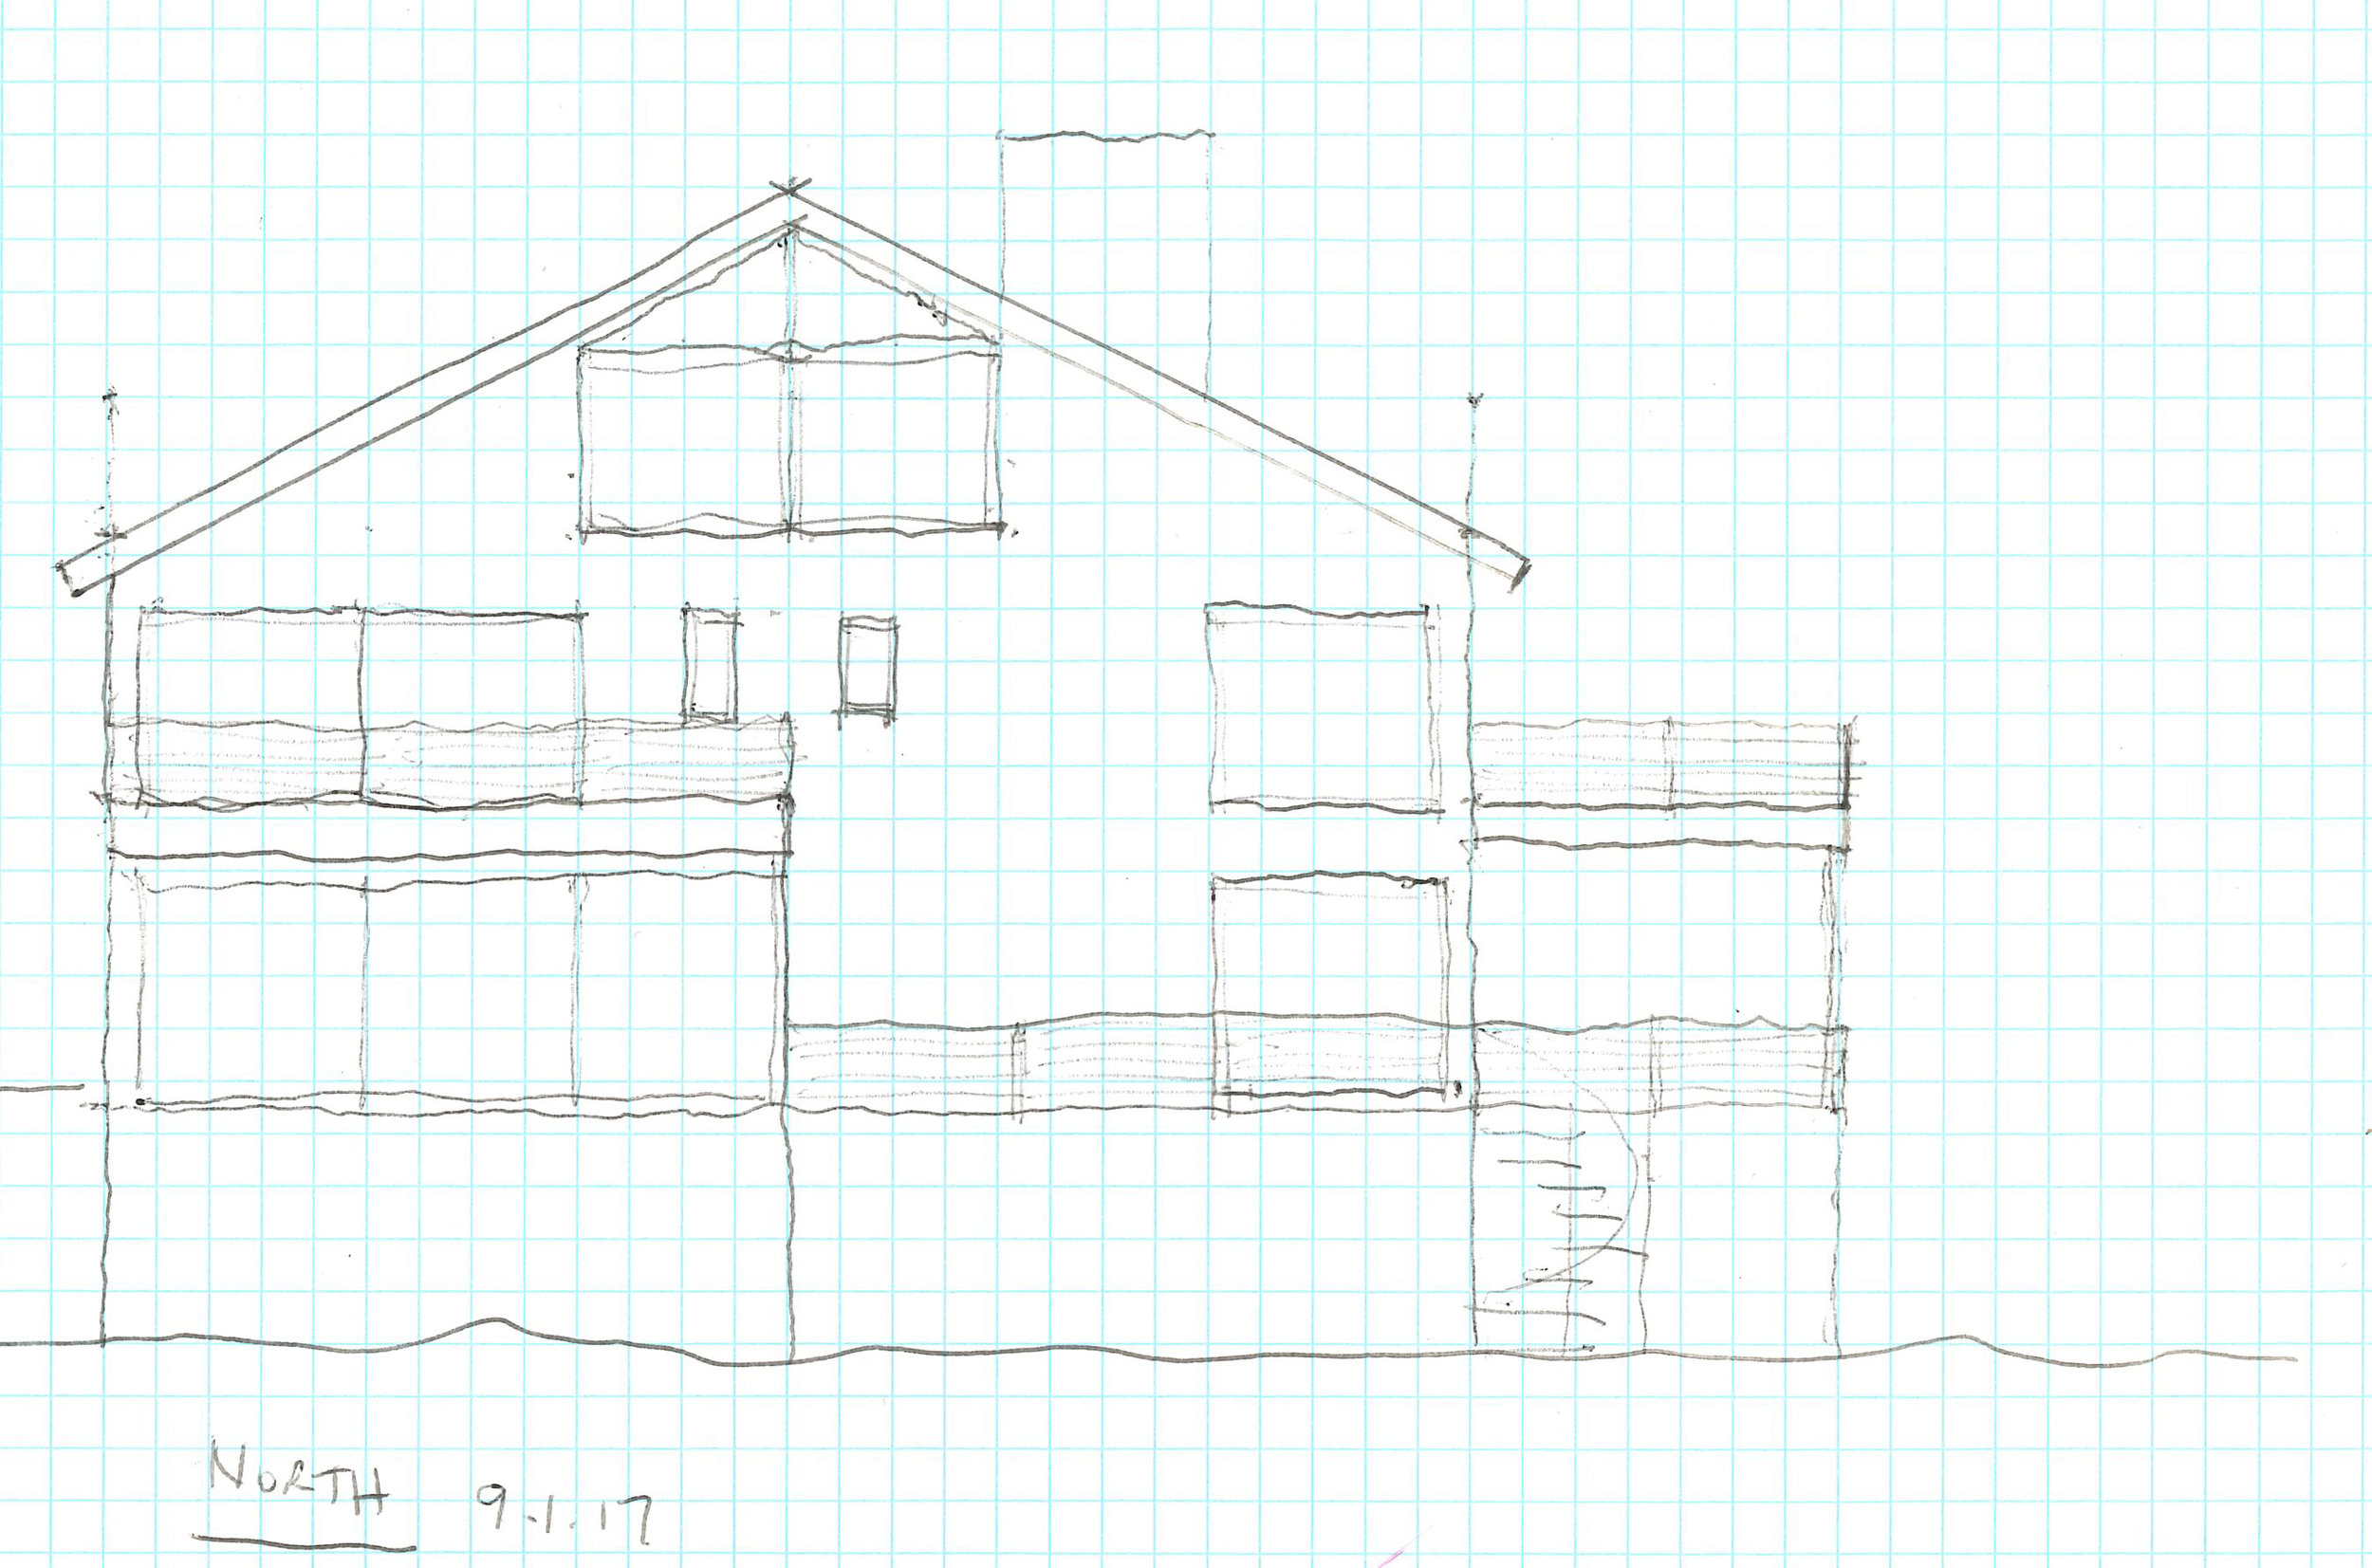 North elevation sketch of the new Granoff residence.  Image courtesy Rich Granoff